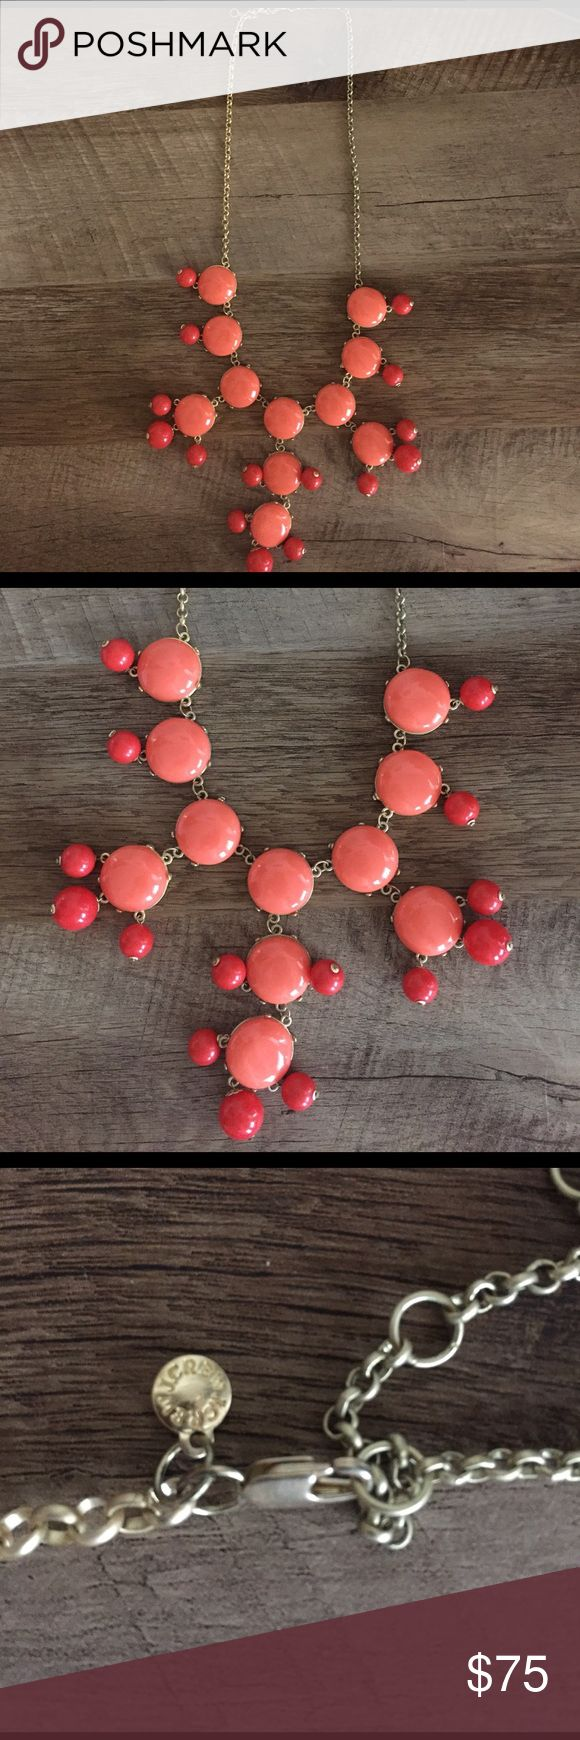 J.Crew Bubble Necklace Only worn once. Coral and red bubble necklace. Adjustable necklace. No damage or scratches anywhere. Perfect condition! J. Crew Jewelry Necklaces